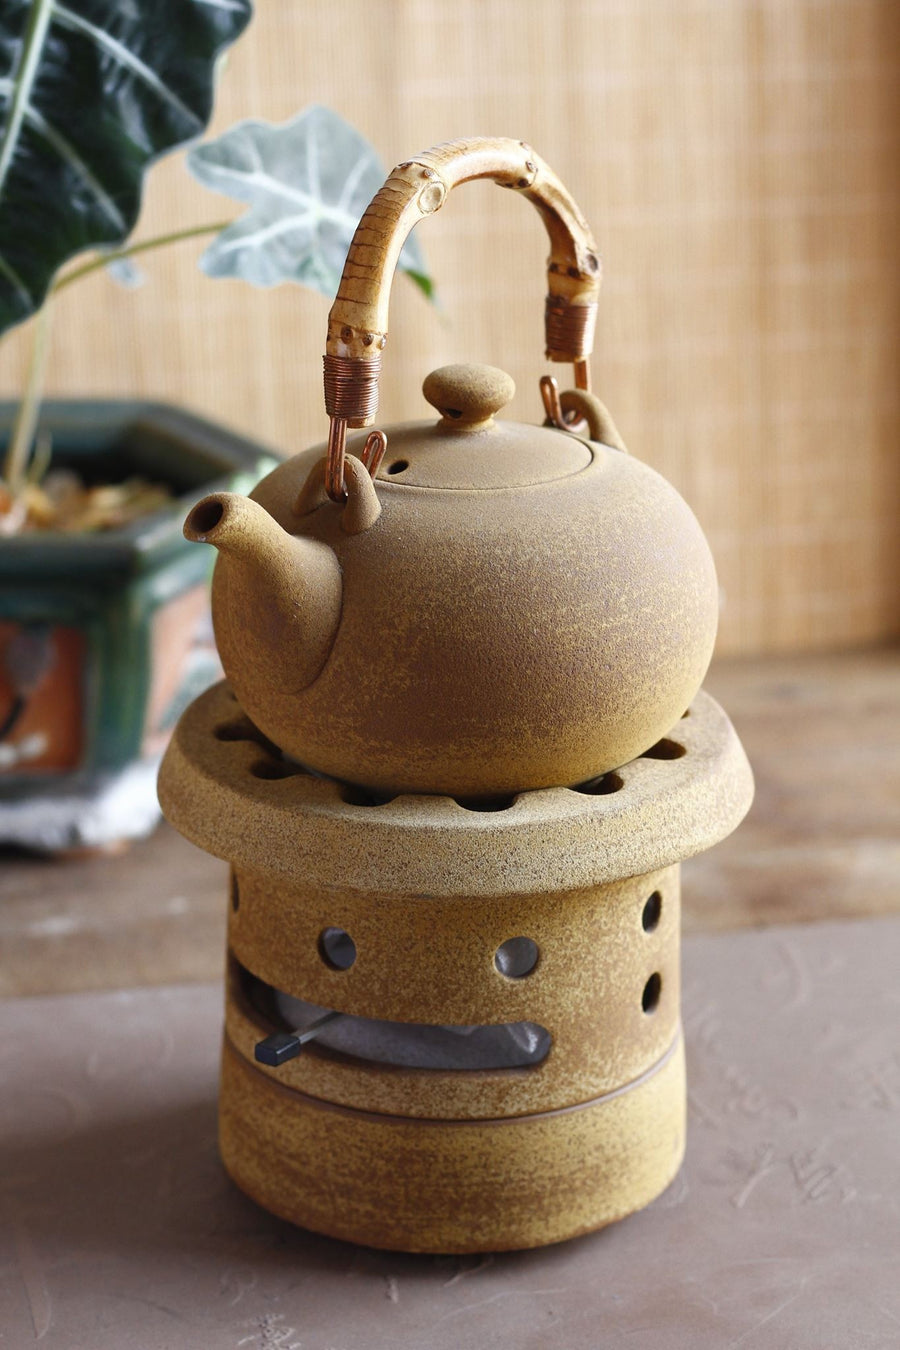 Lin's Ceramics Kettle Set VI